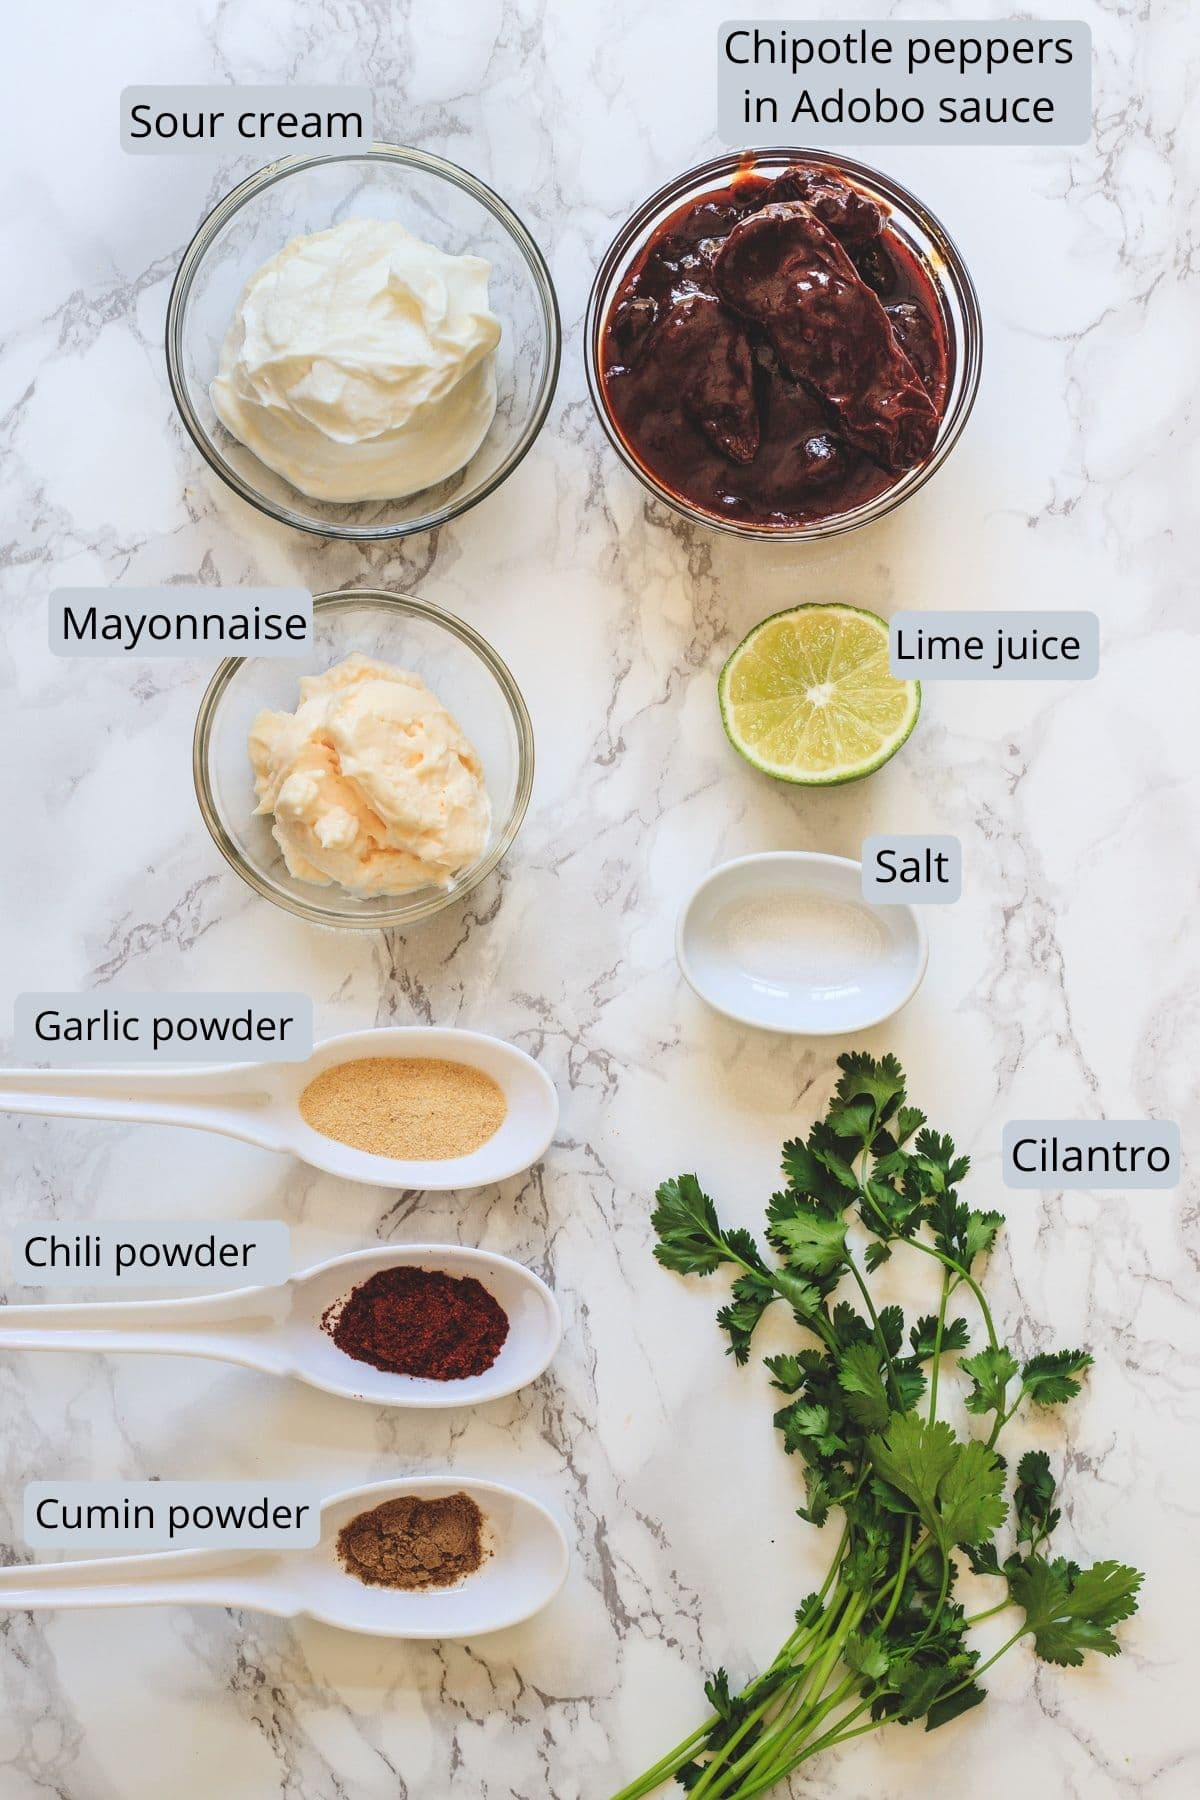 Image of ingredients used in chipotle sauce. Showing sour cream, mayo, chipotle peppers, cilantro, lime, salt, garlic, cumin and chili powder.